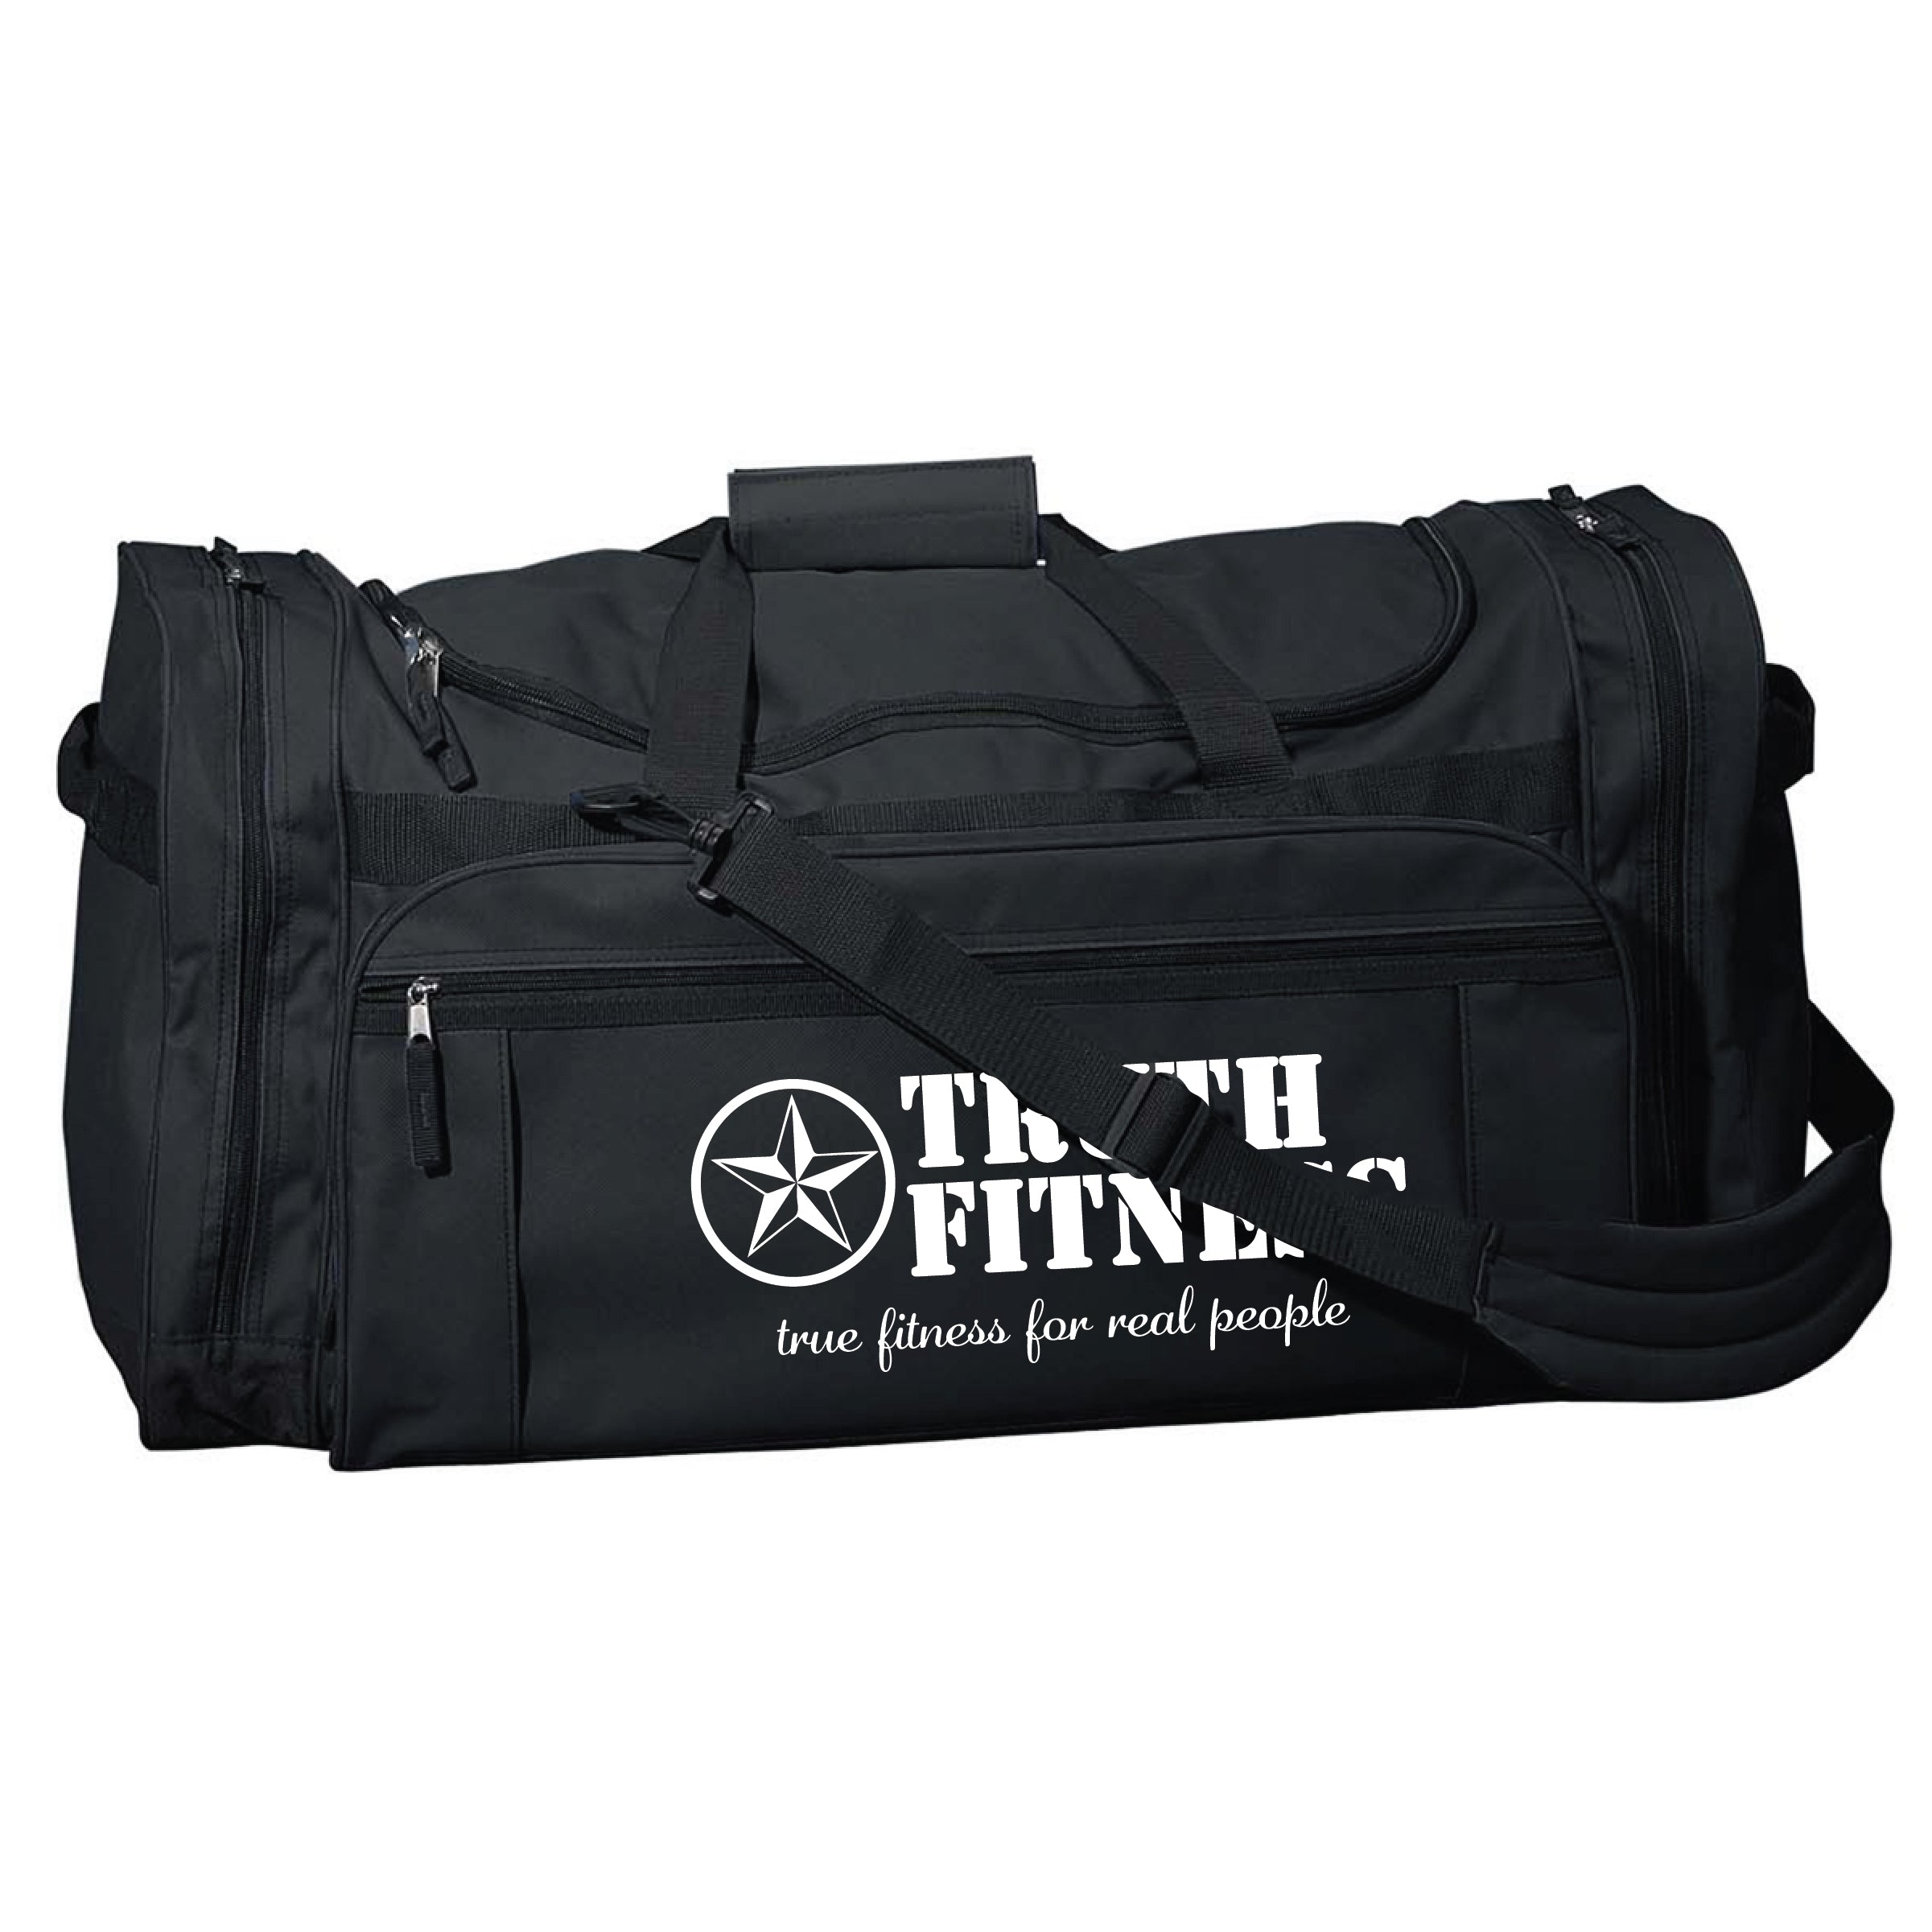 TF Liberty Bags Explorer Large Duffel Bag